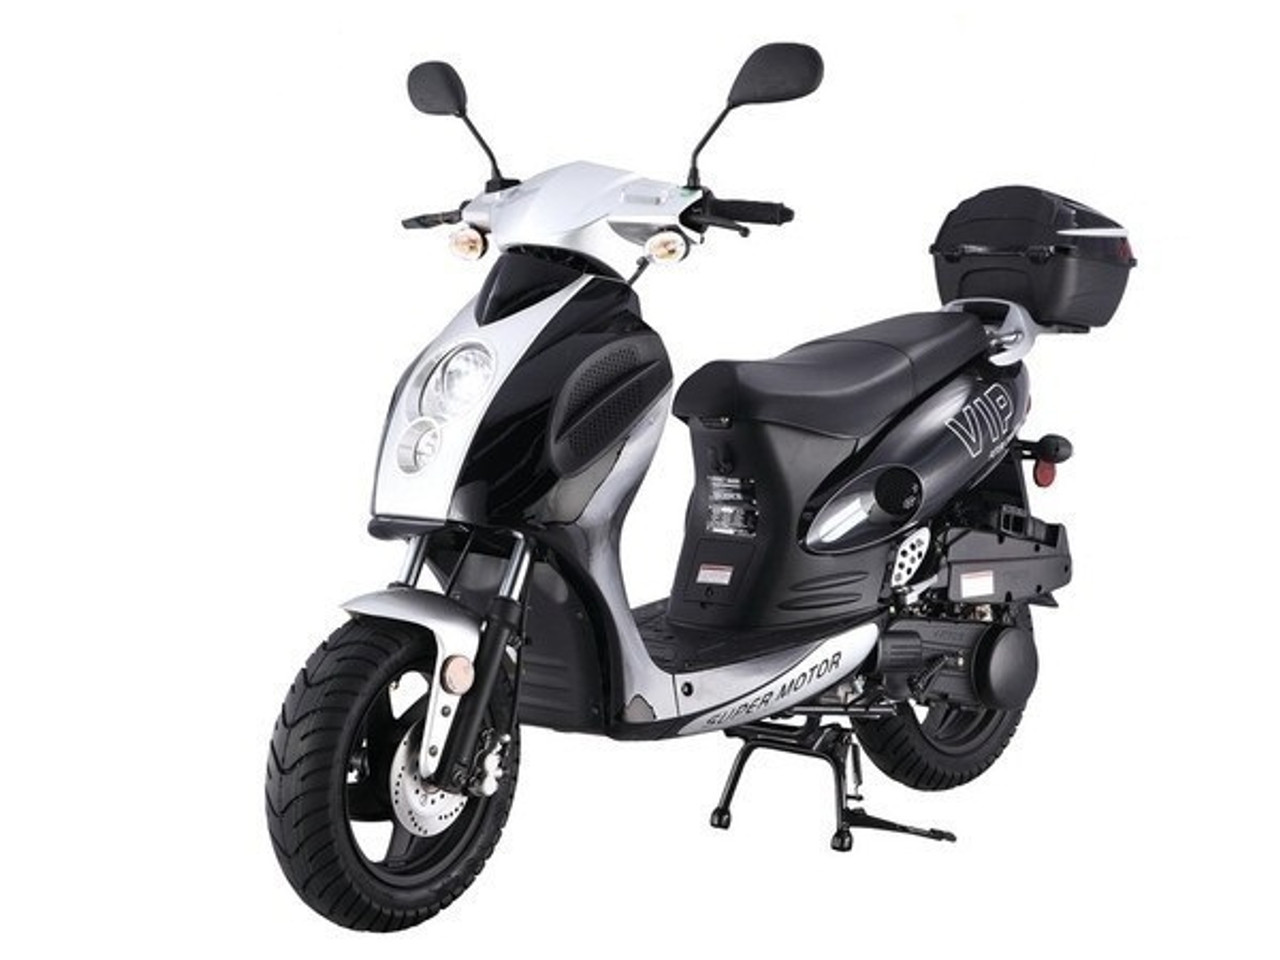 Taotao 150cc Pilot Moped Gas Scooter Electric Start, Kick Start Back Up CA Legal - Fully Assembled and Tested